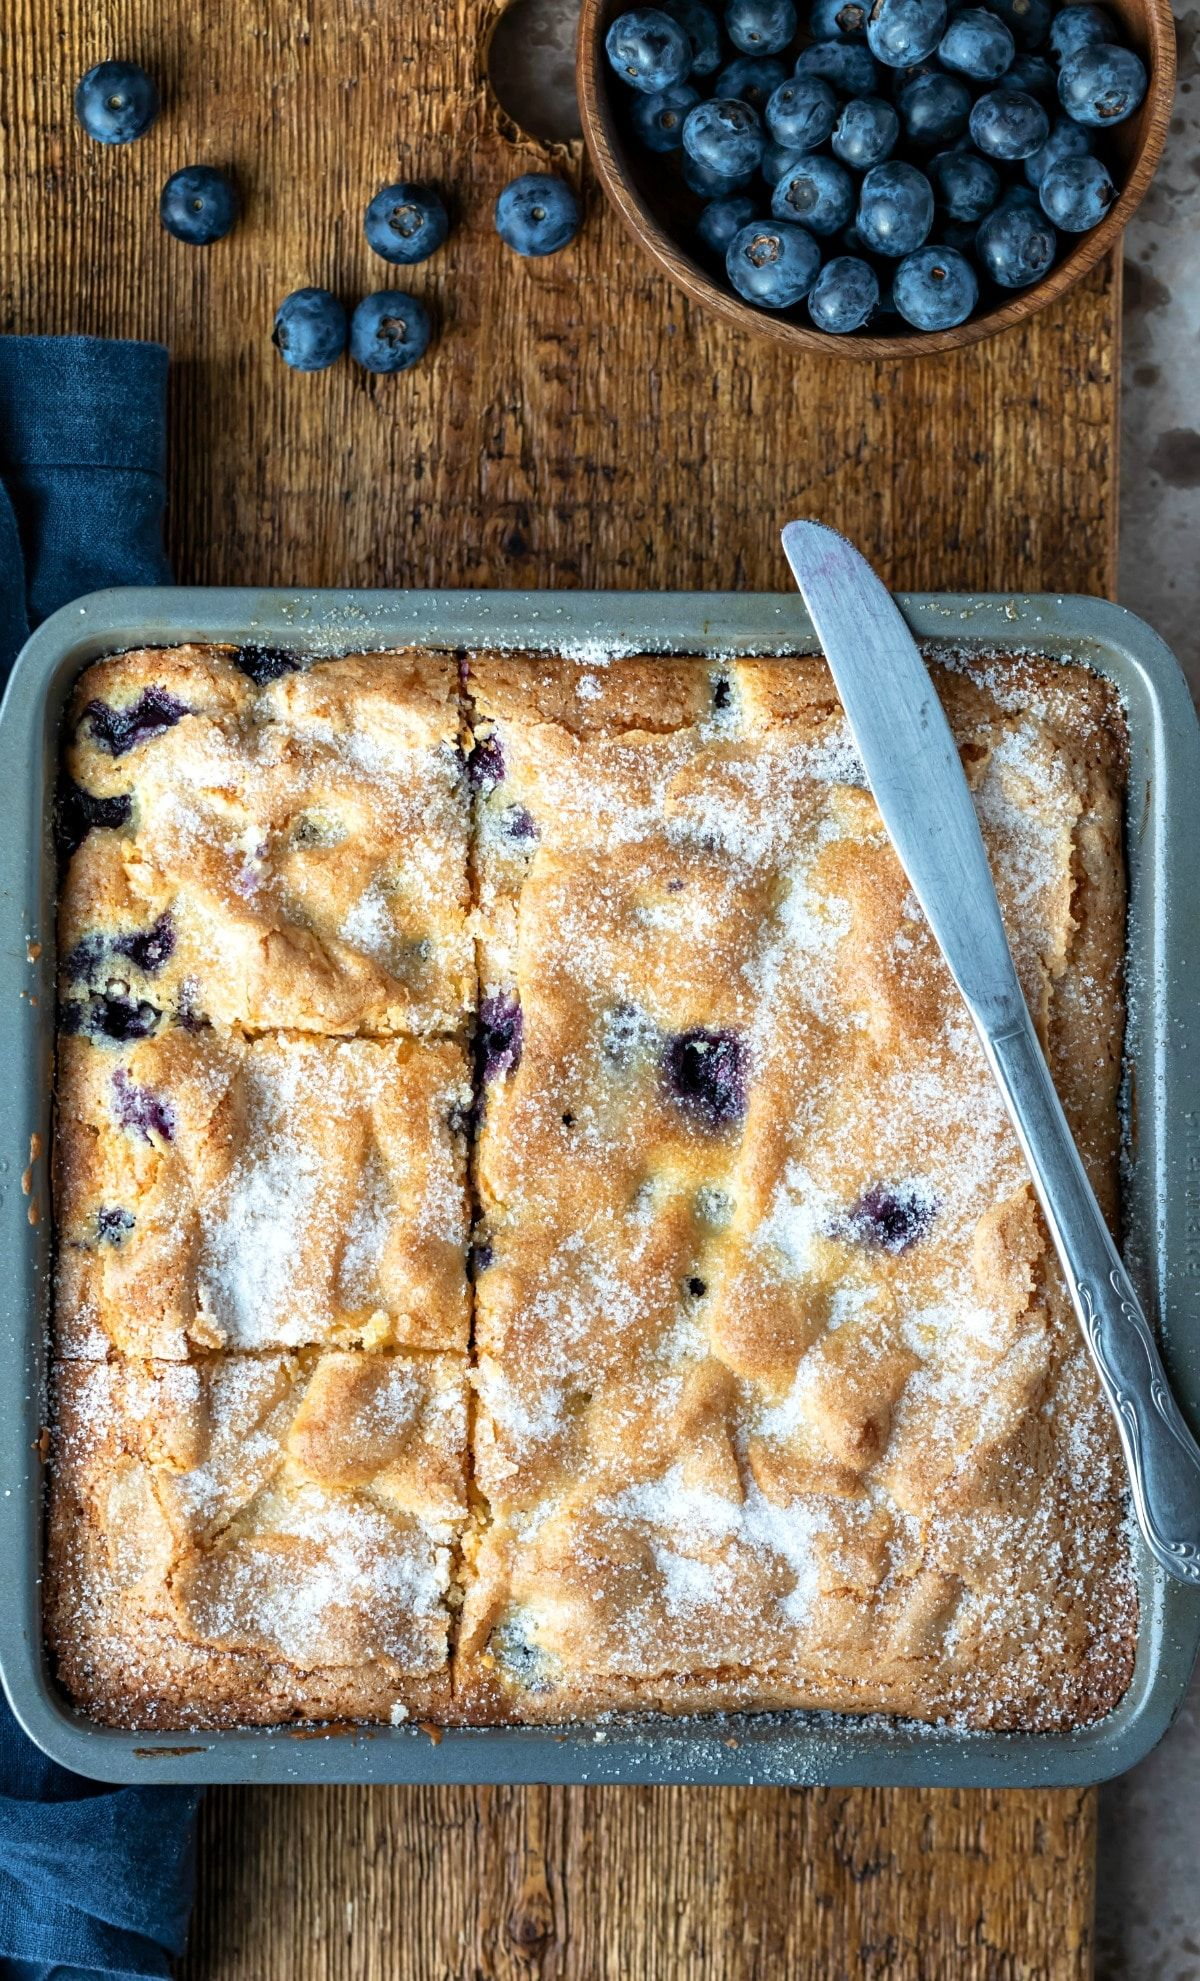 Blueberry Cake In 2020 Blueberry Coffee Cake Recipe Blueberry Cake Recipes Fruity Desserts